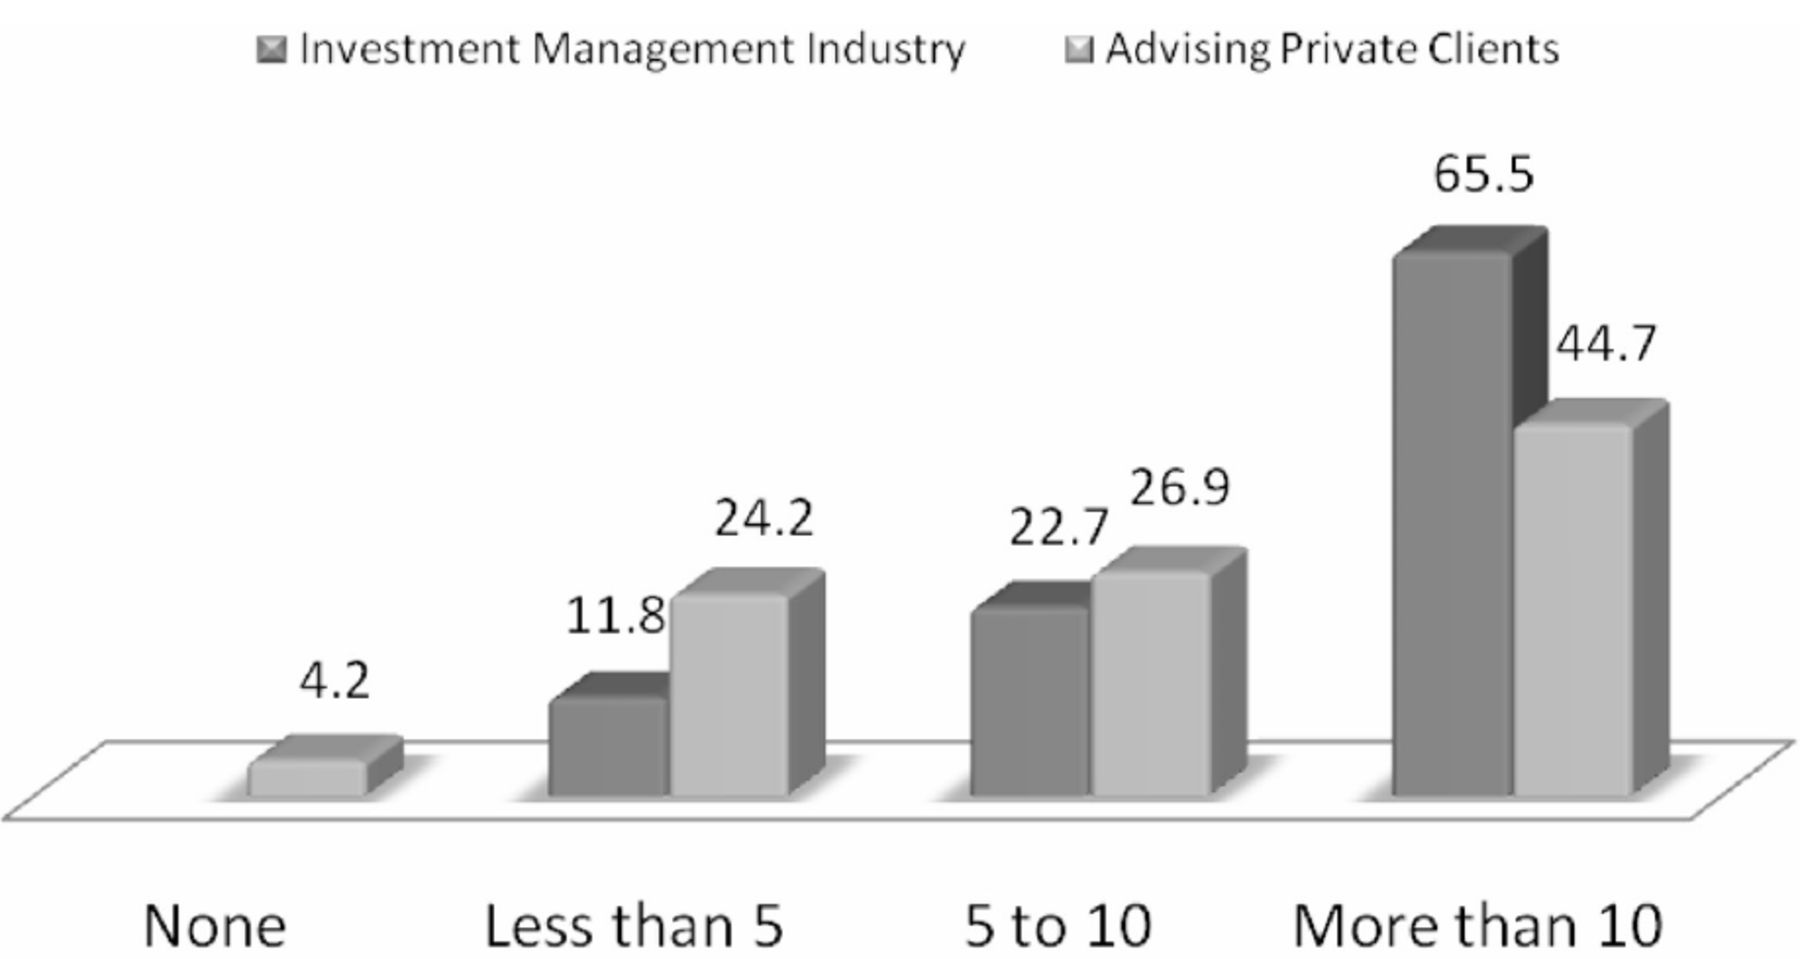 Tax-Aware Investment Management Practice | The Journal of Wealth